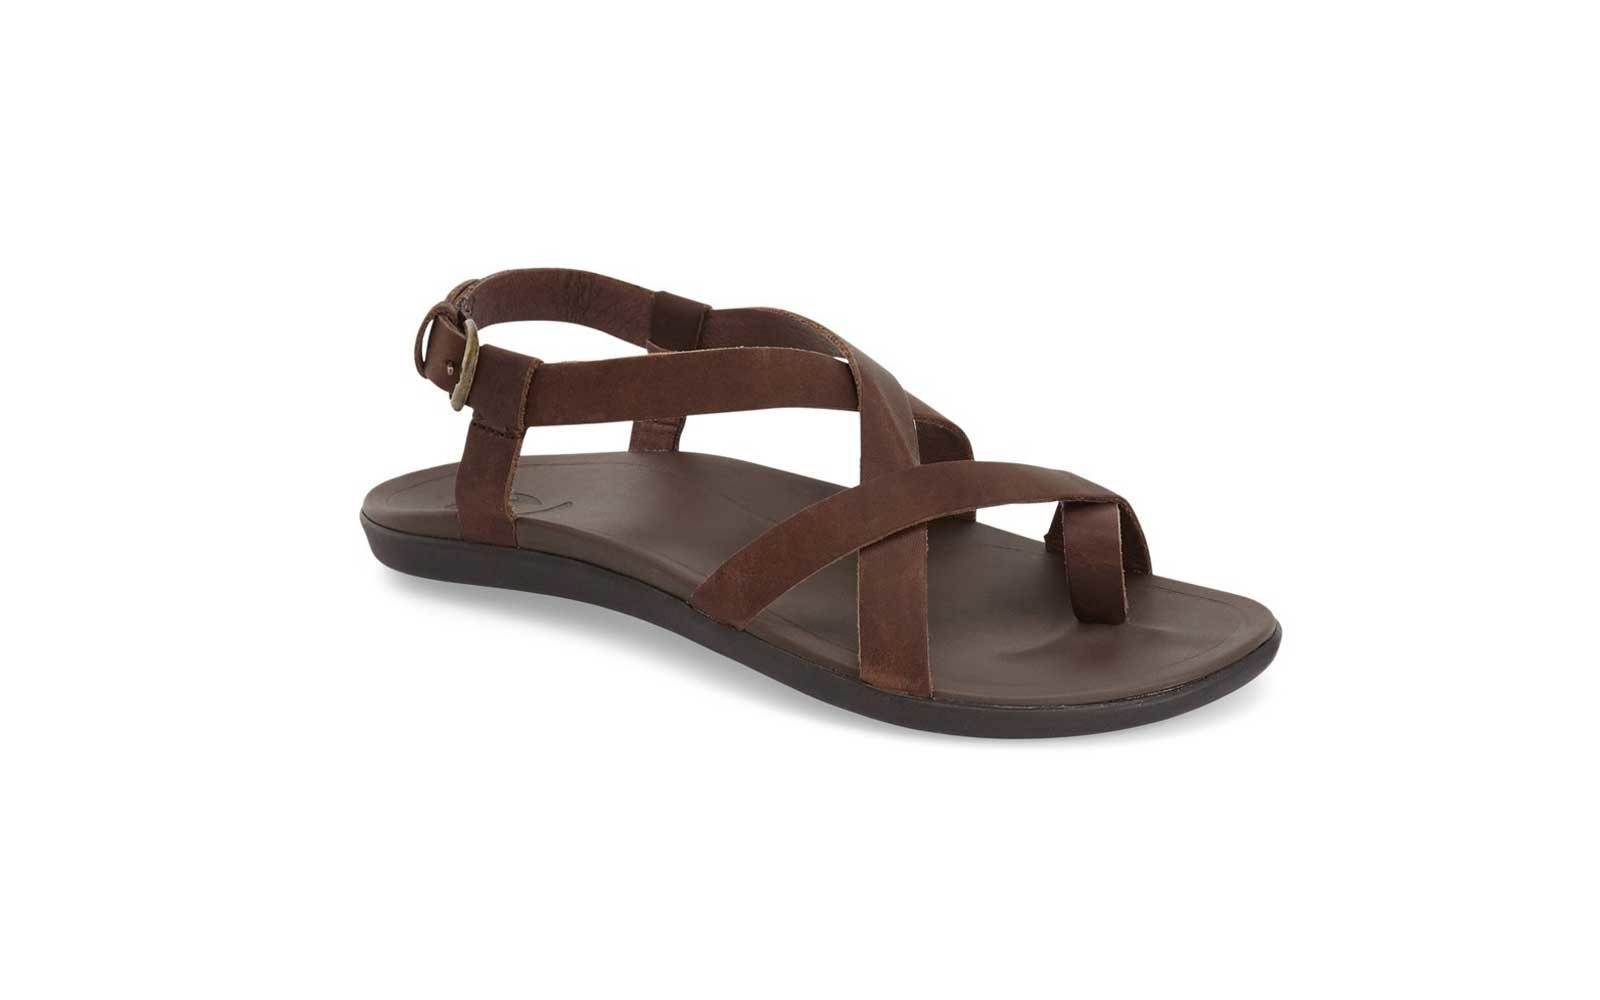 93f6b89335d4 Lightweight Leather  Olukai  Upena  Flat Sandal. womens olukai sandals